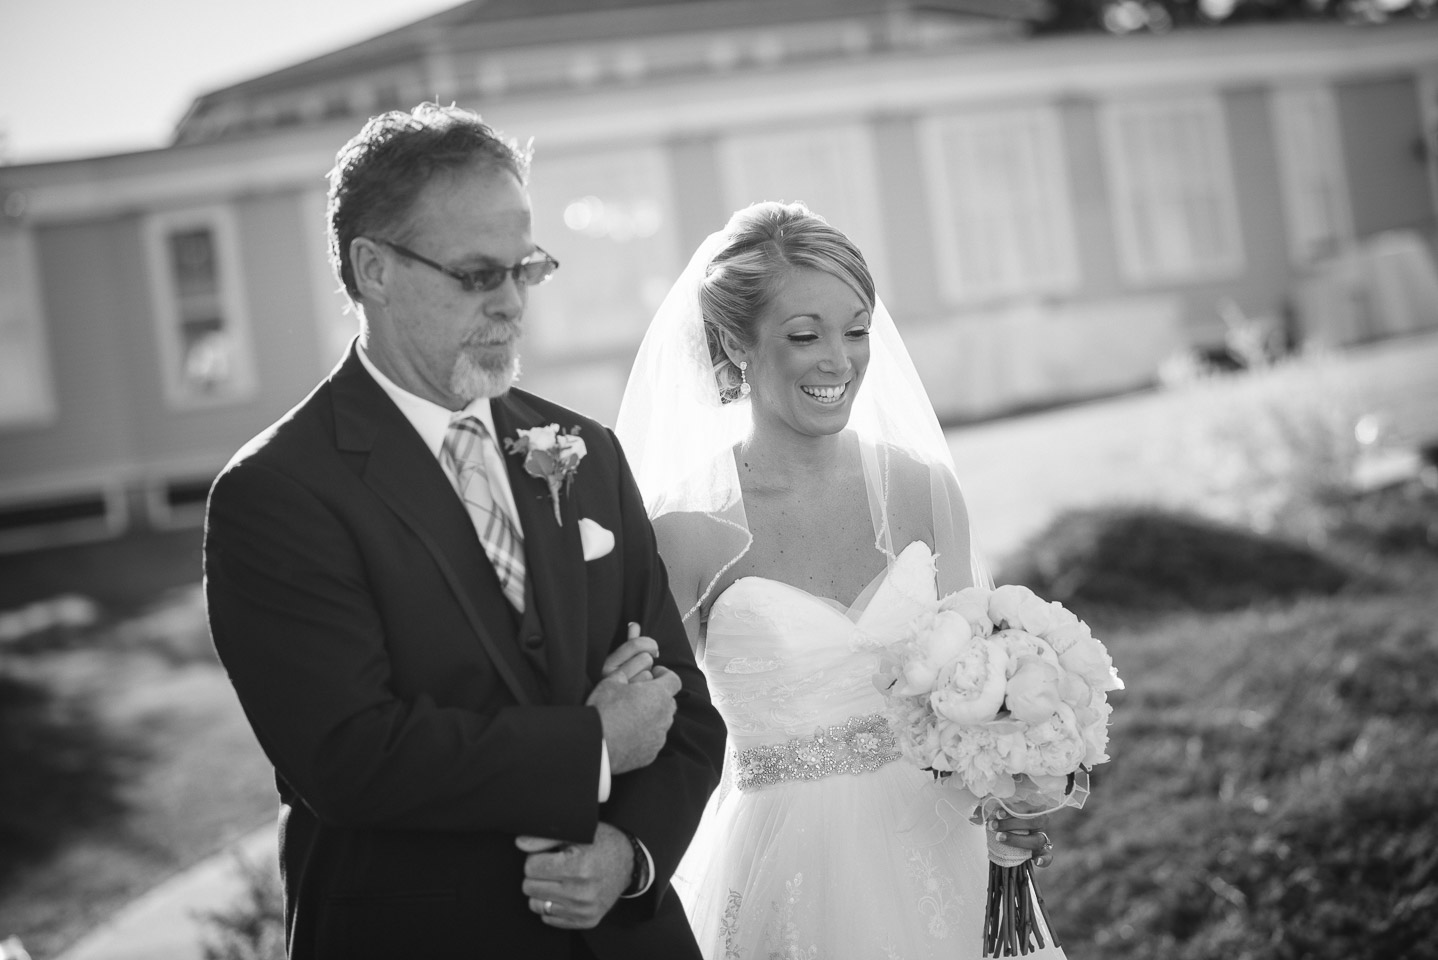 NH Wedding Photography: processional